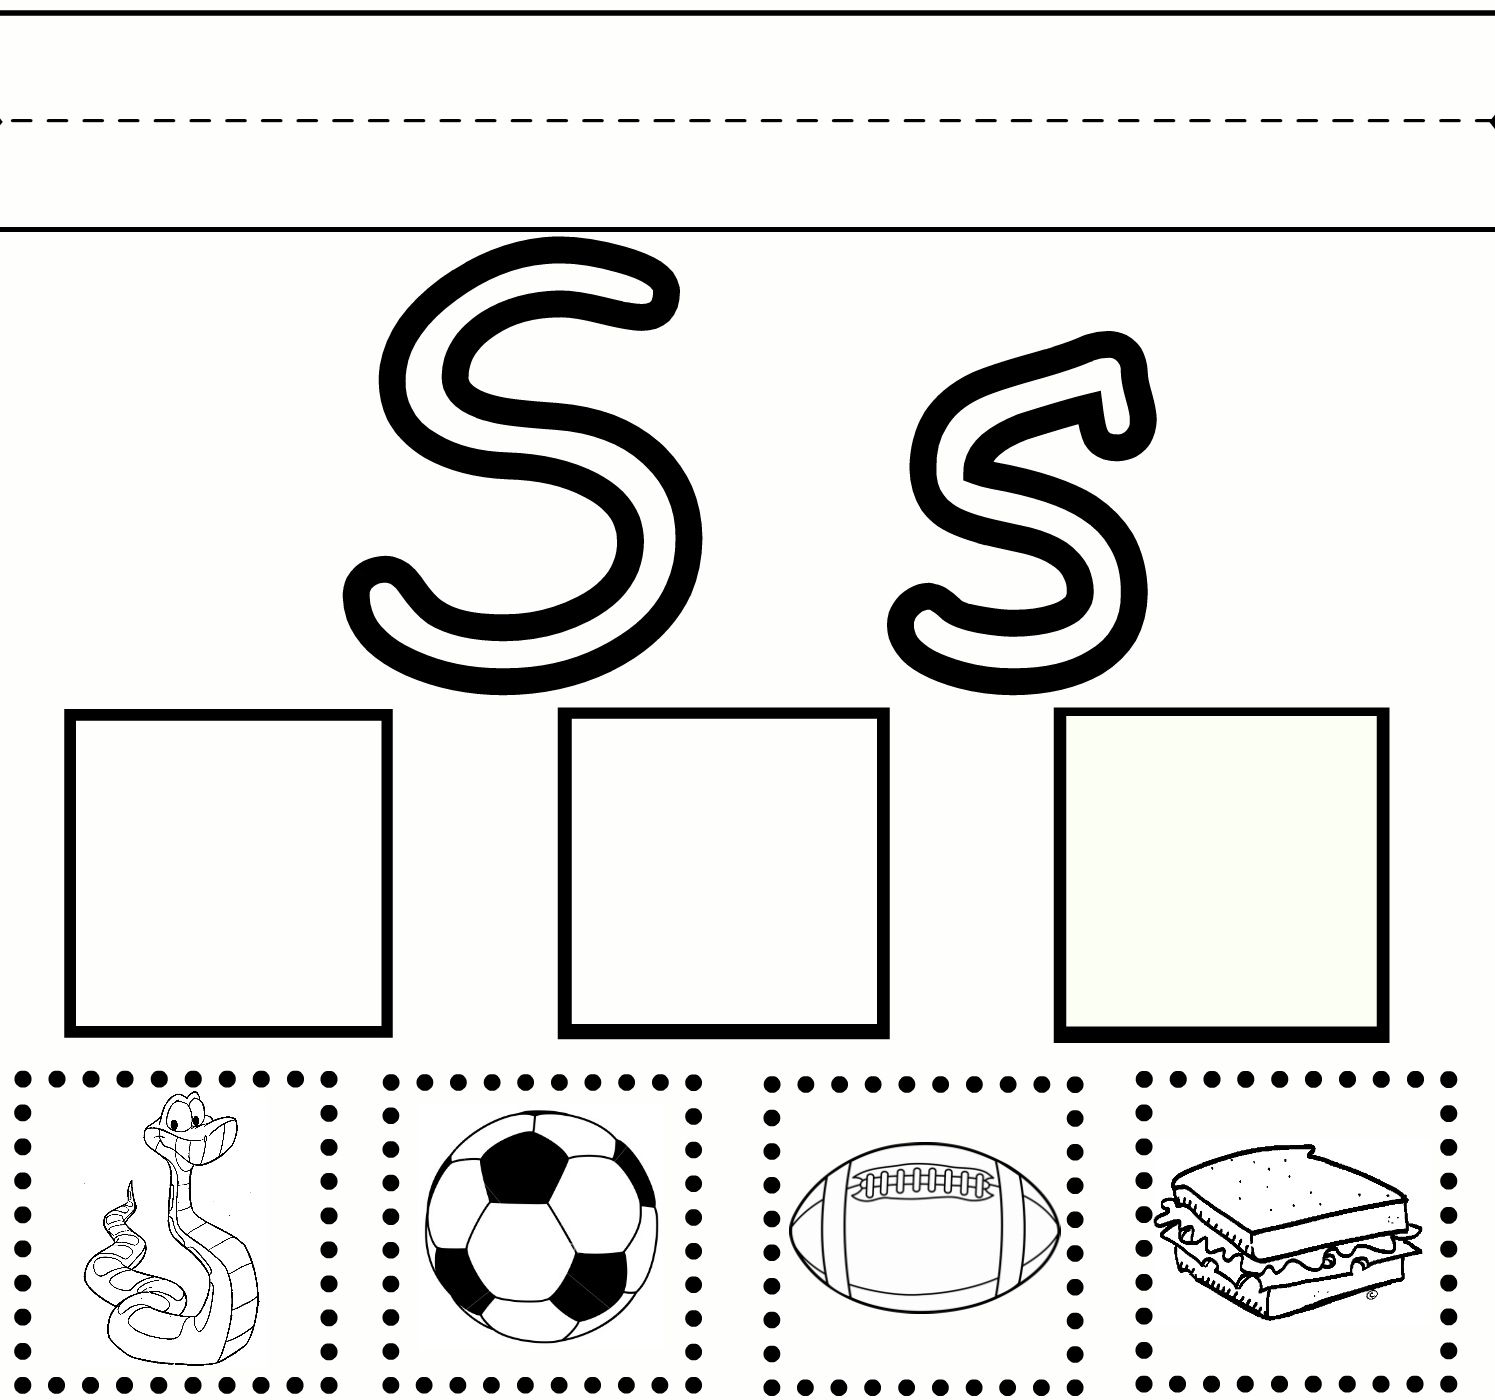 preschool learning letter s practice free printable worksheet kinder language arts. Black Bedroom Furniture Sets. Home Design Ideas